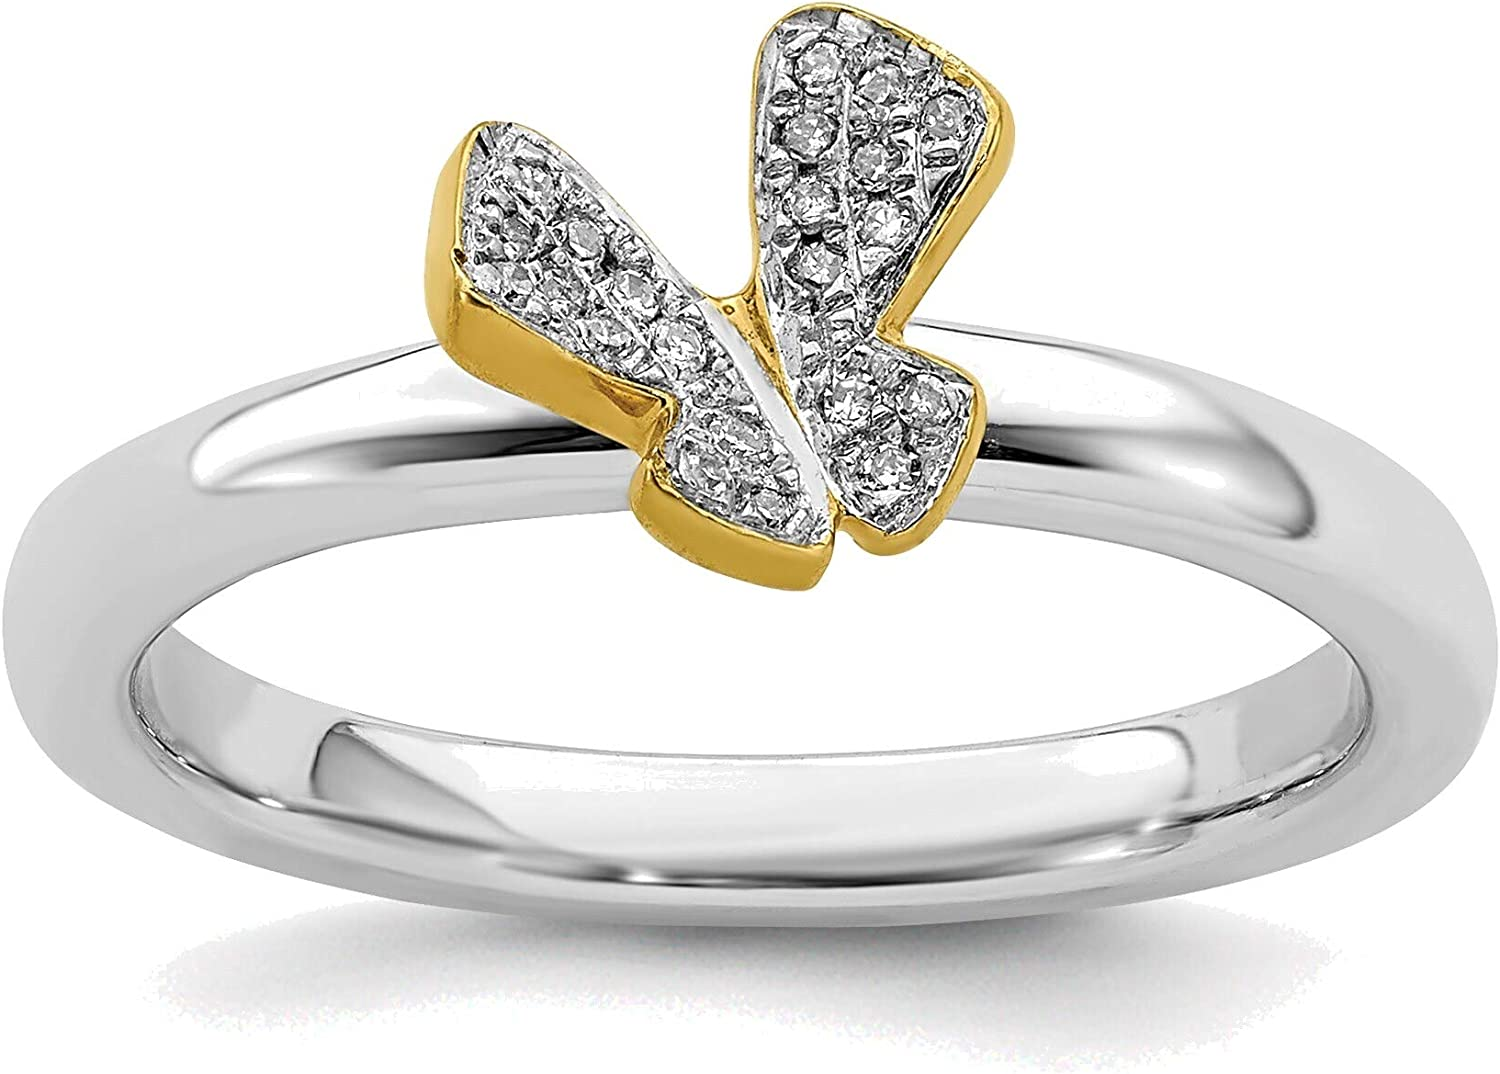 Bonyak New sales Jewelry Solid Sterling Silver Gold- Expressions Stackable Tucson Mall